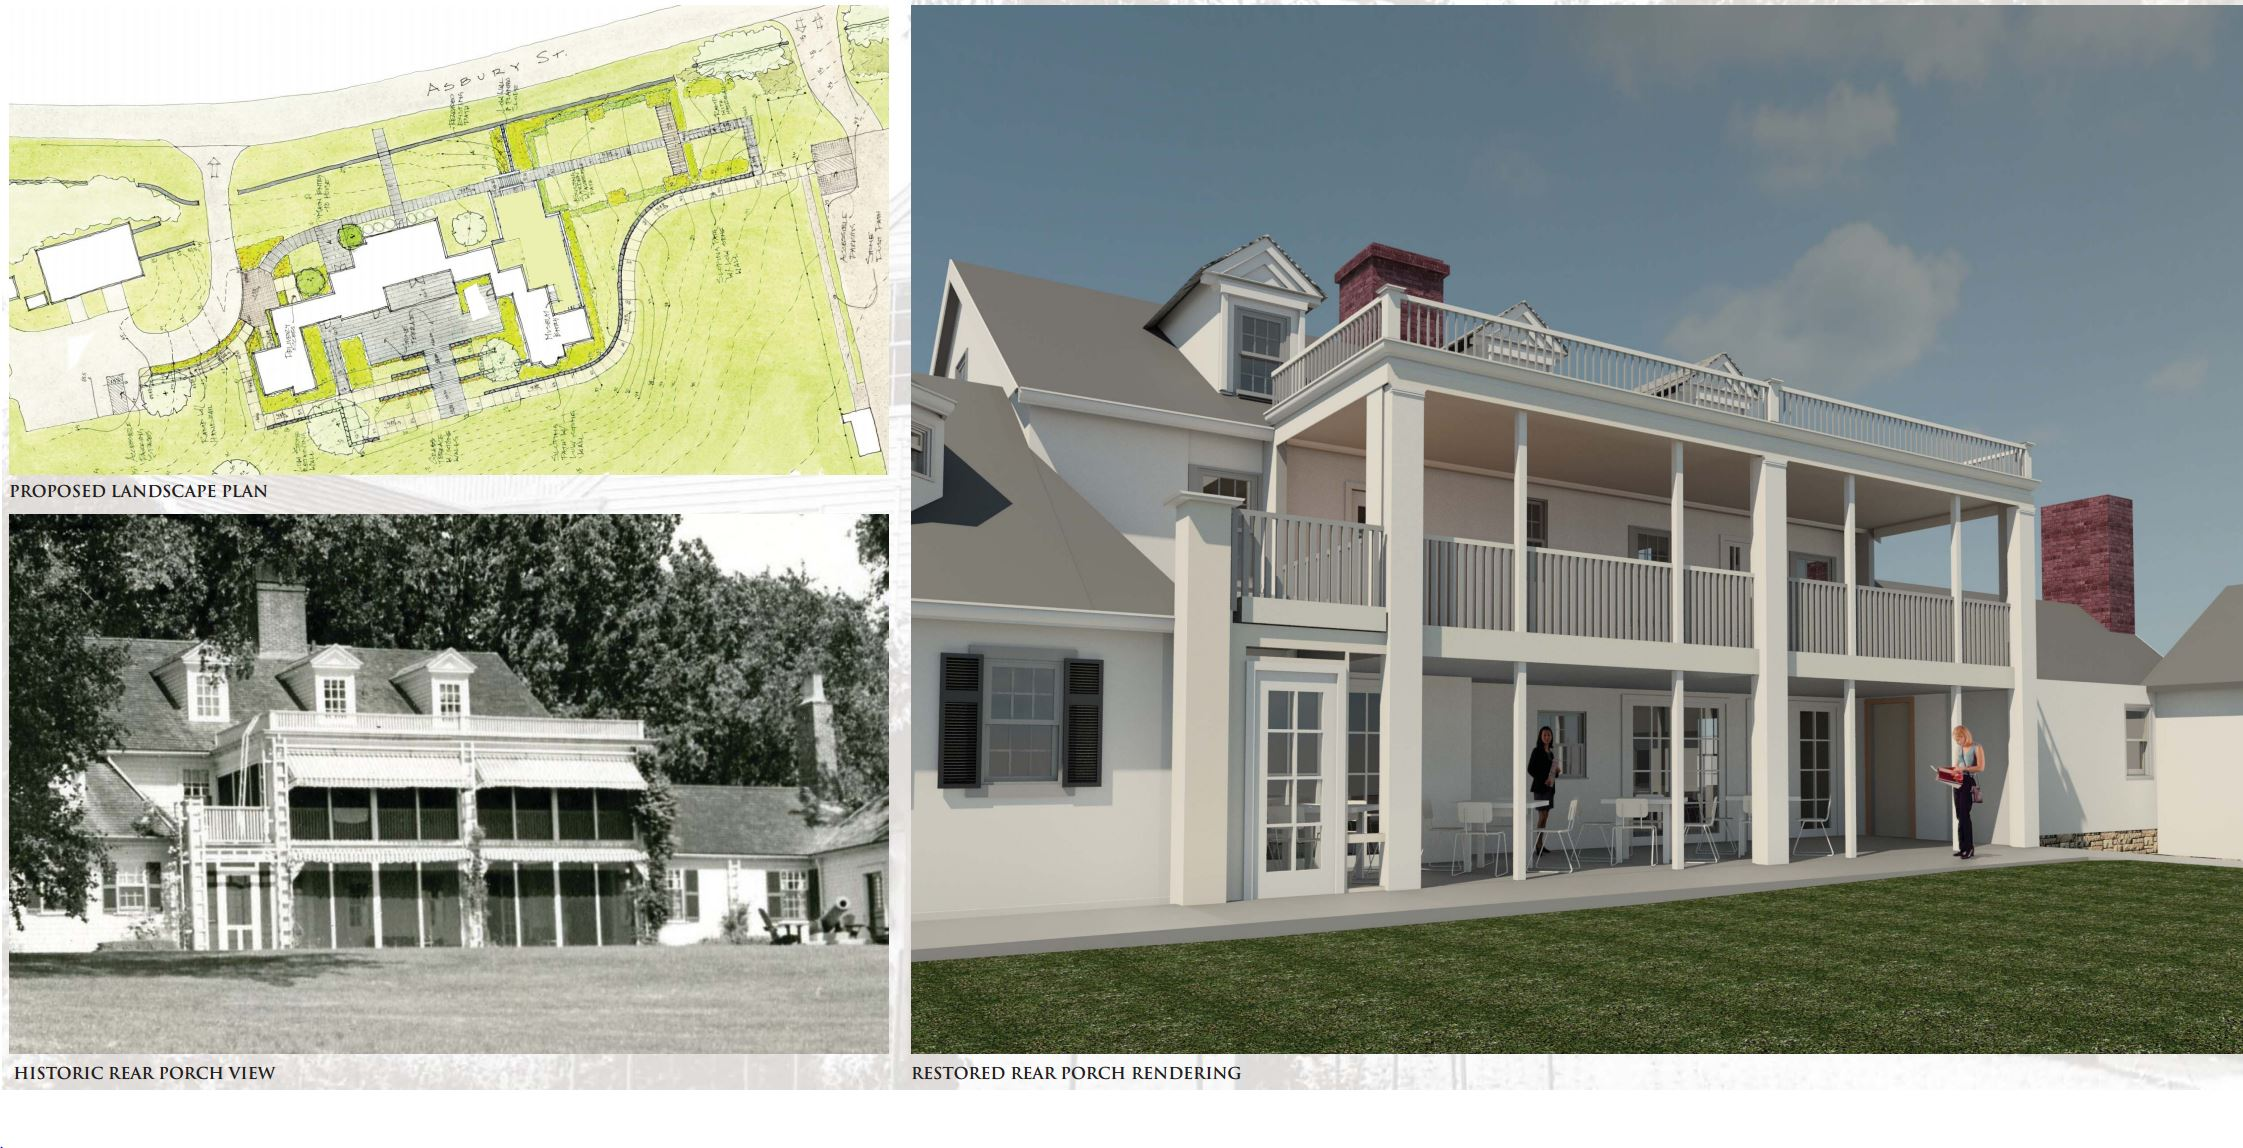 Rendering by Spencer, Sullivan & Vogt of restored rear of property